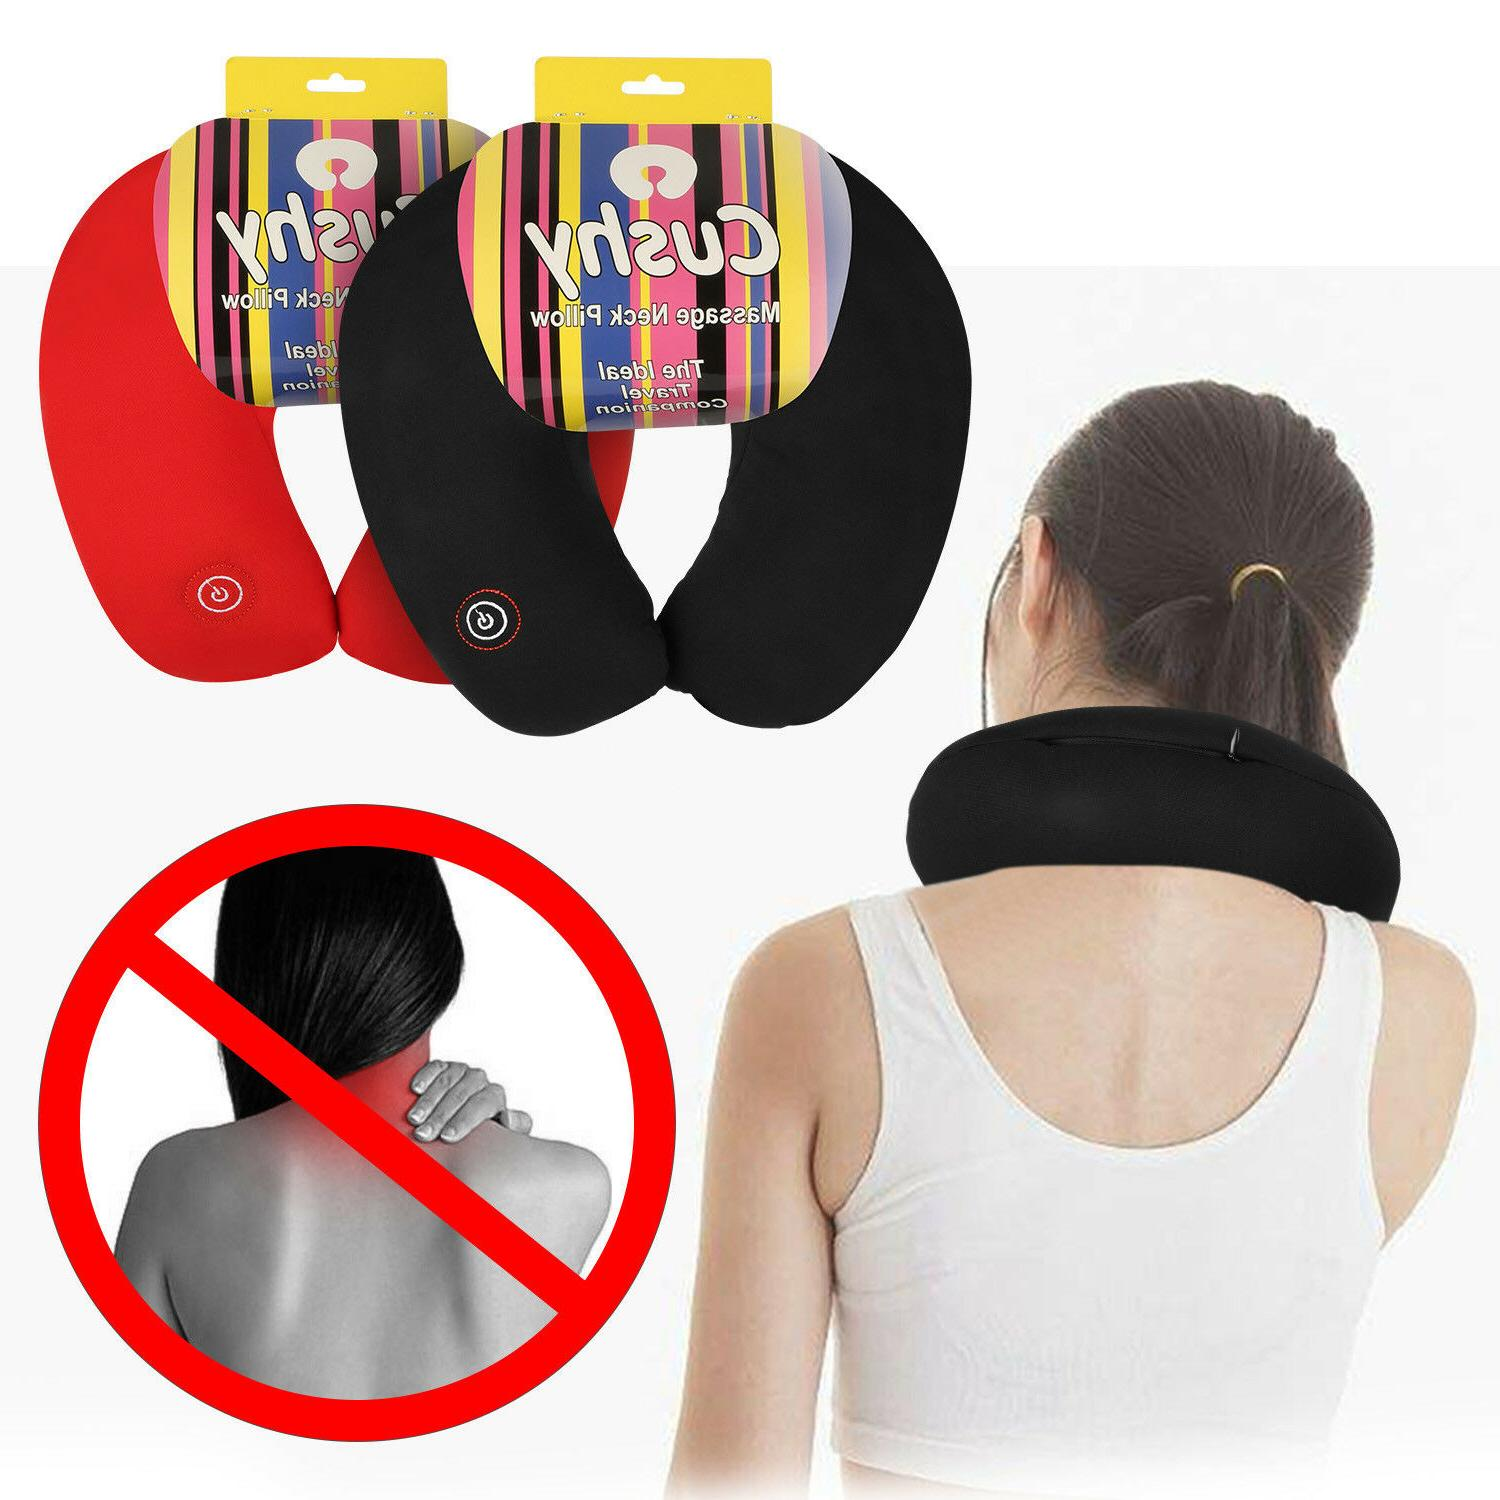 Neck Massage Pillow Vibrating Travel Micro Bead Stress Relie